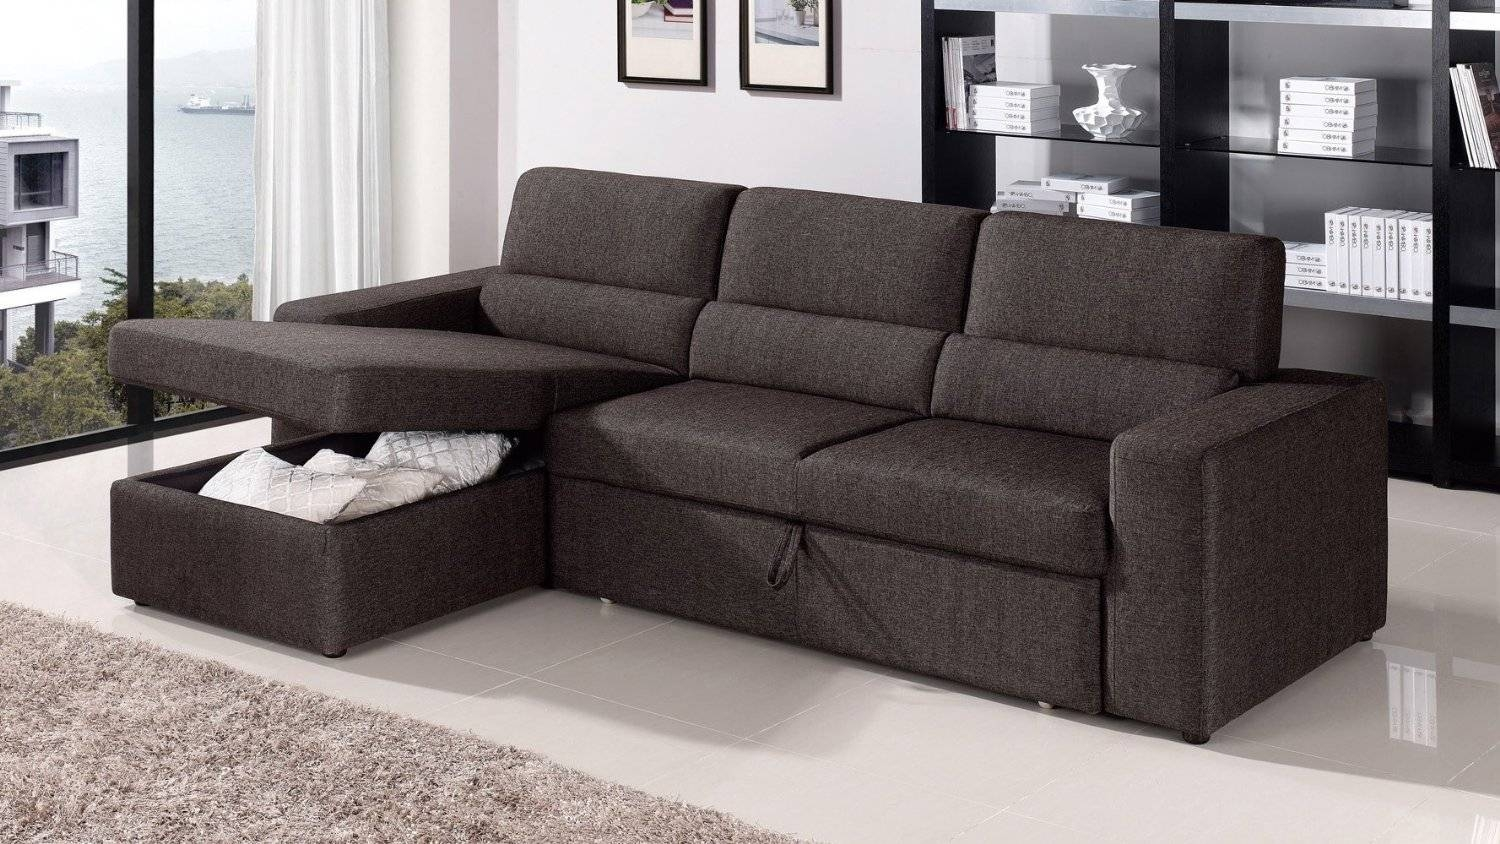 Funiture: Sleeper Sofa Ideas For Living Room Using Black Leather for Black Leather Sectional Sleeper Sofas (Image 10 of 30)